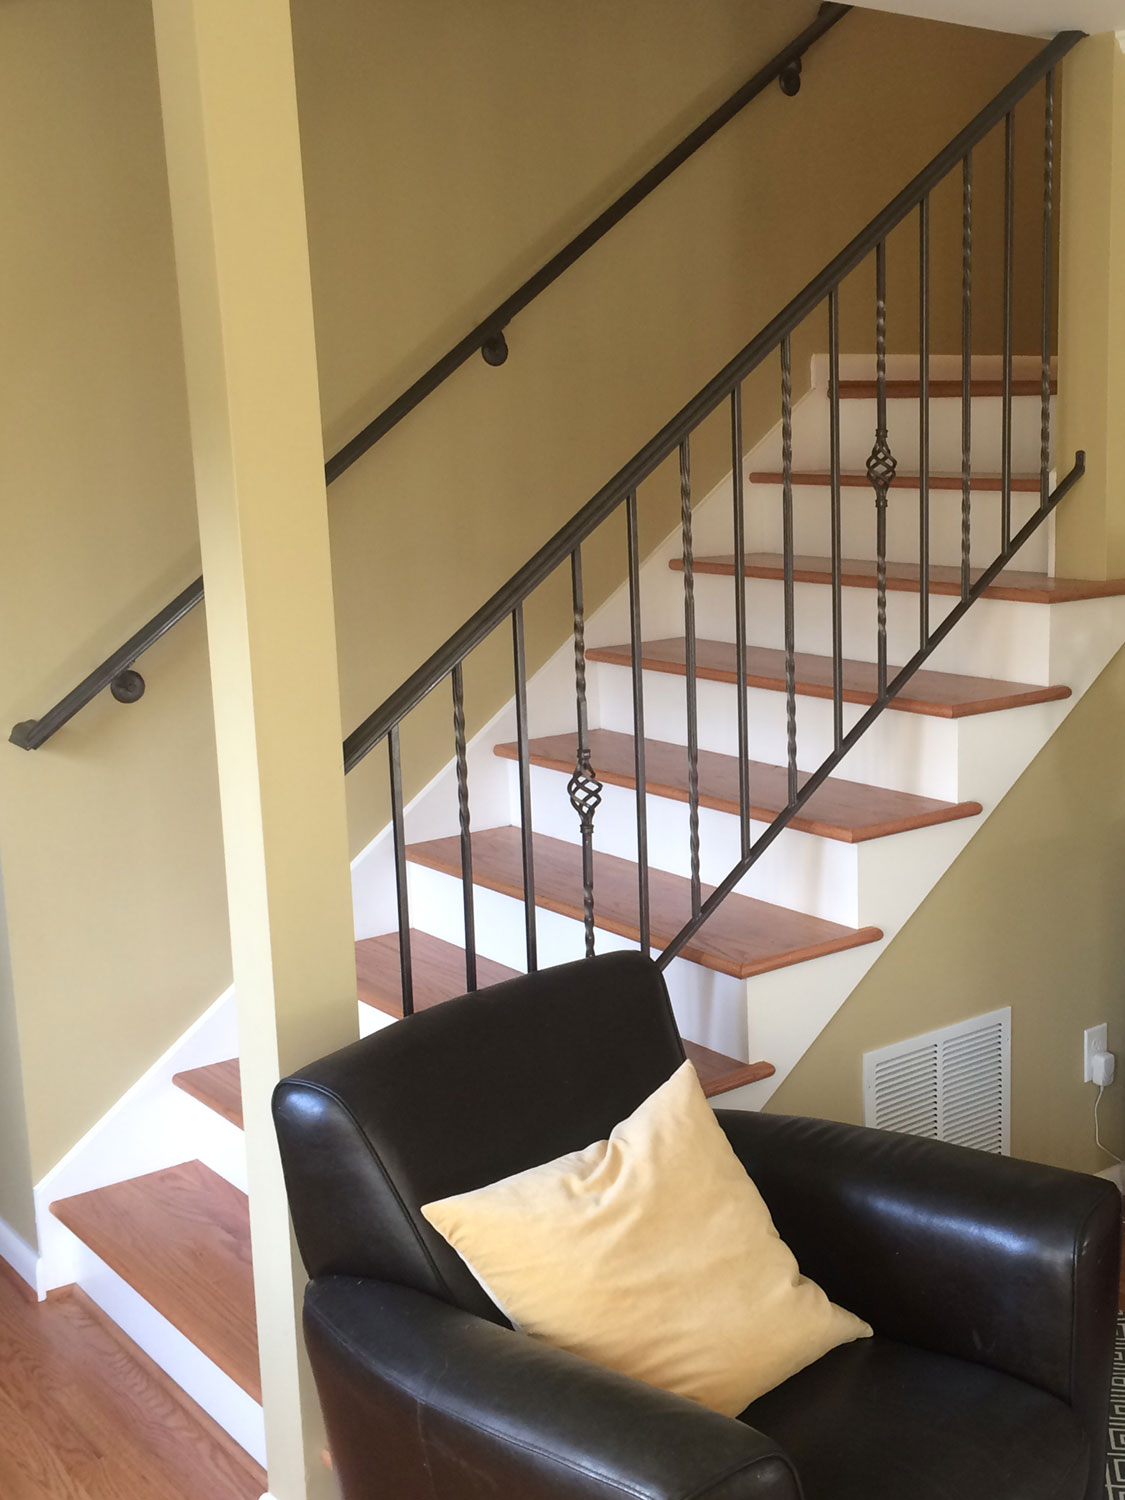 Traditional Handrail and Guardrail for Interior Stairs - Featured Image